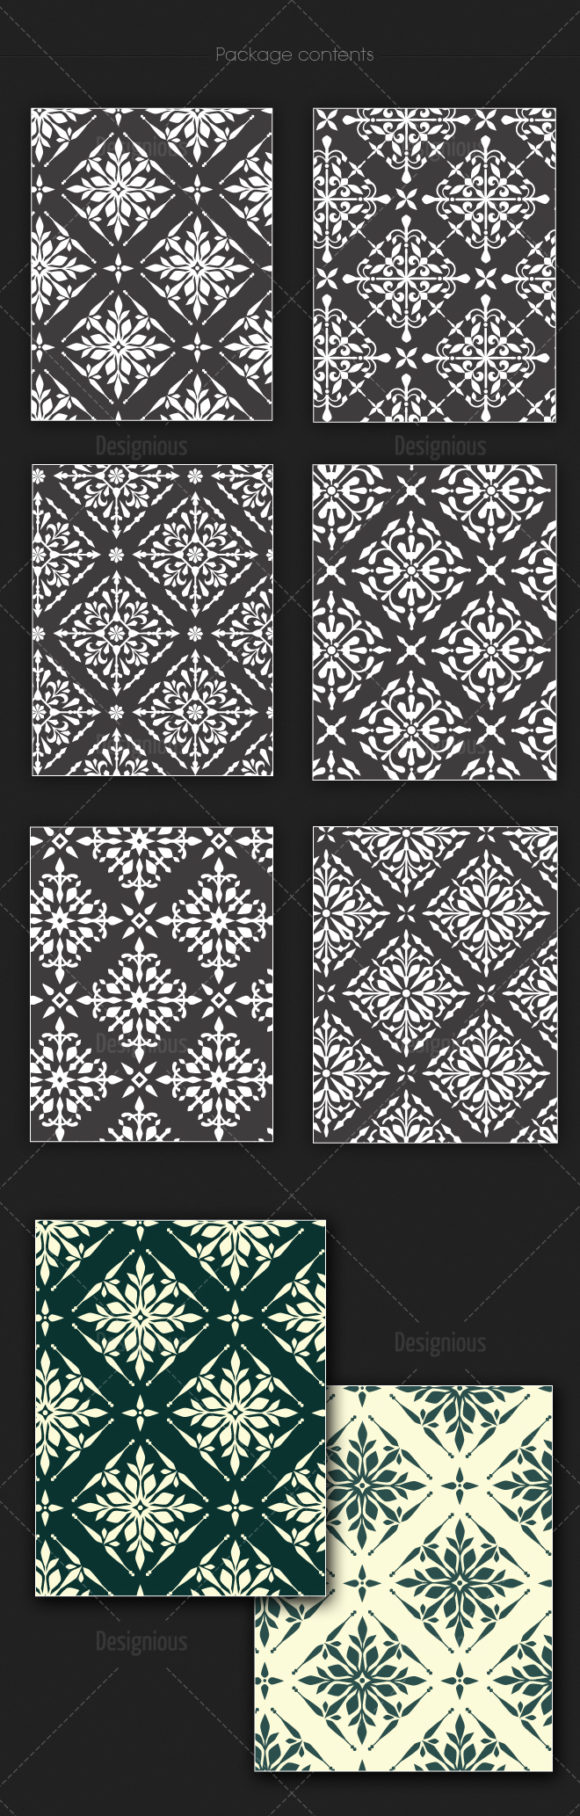 Seamless Patterns Vector Pack 139 6